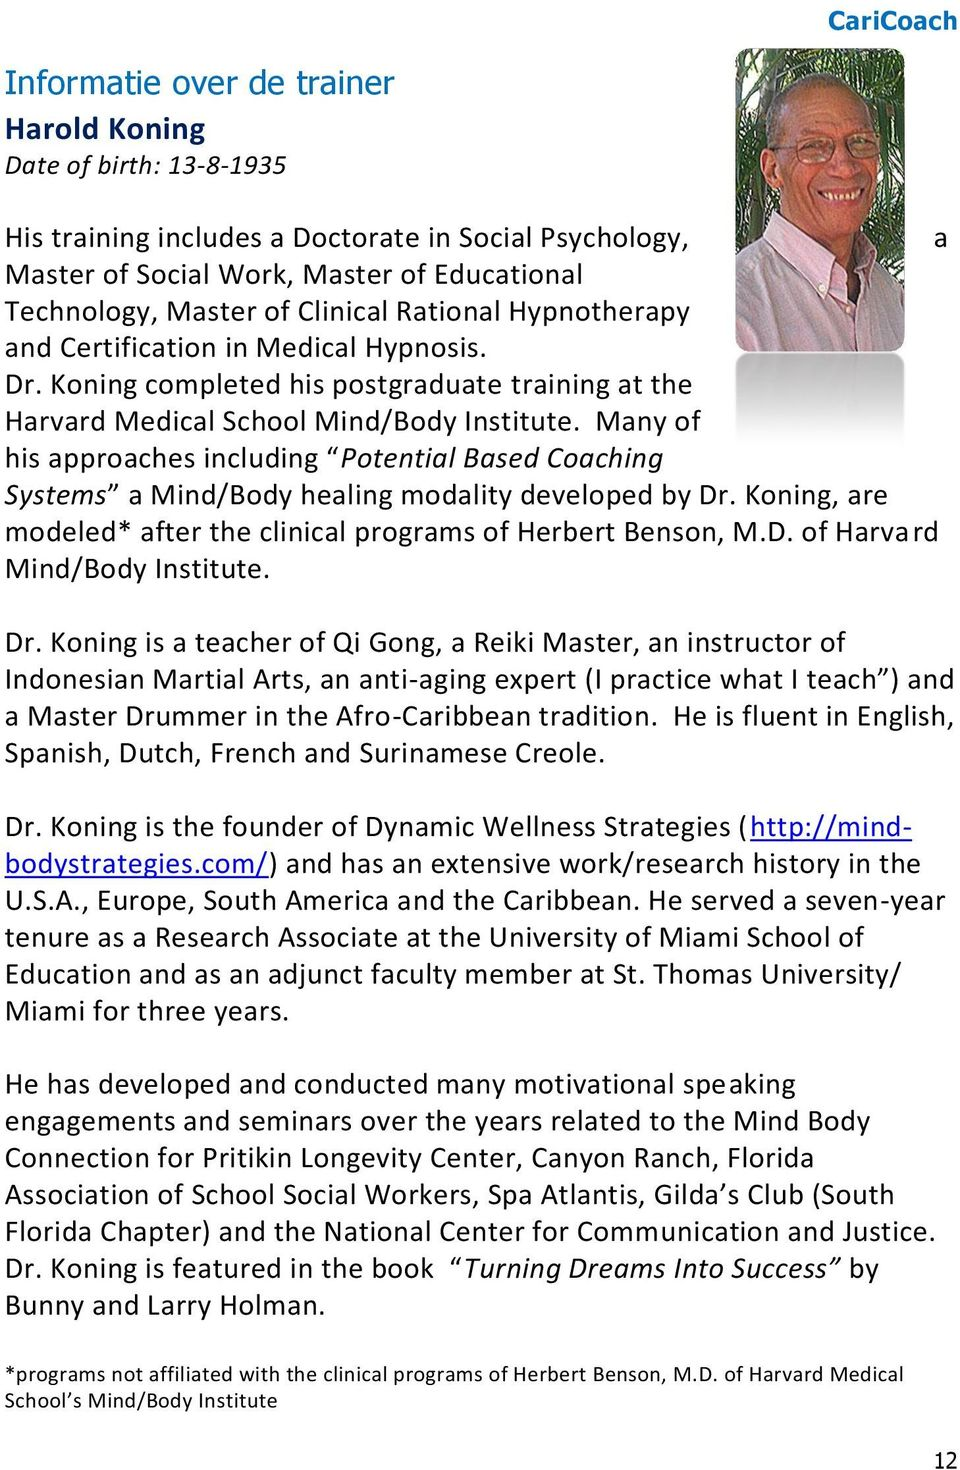 Many of his approaches including Potential Based Coaching Systems a Mind/Body healing modality developed by Dr. Koning, are modeled* after the clinical programs of Herbert Benson, M.D. of Harvard Mind/Body Institute.